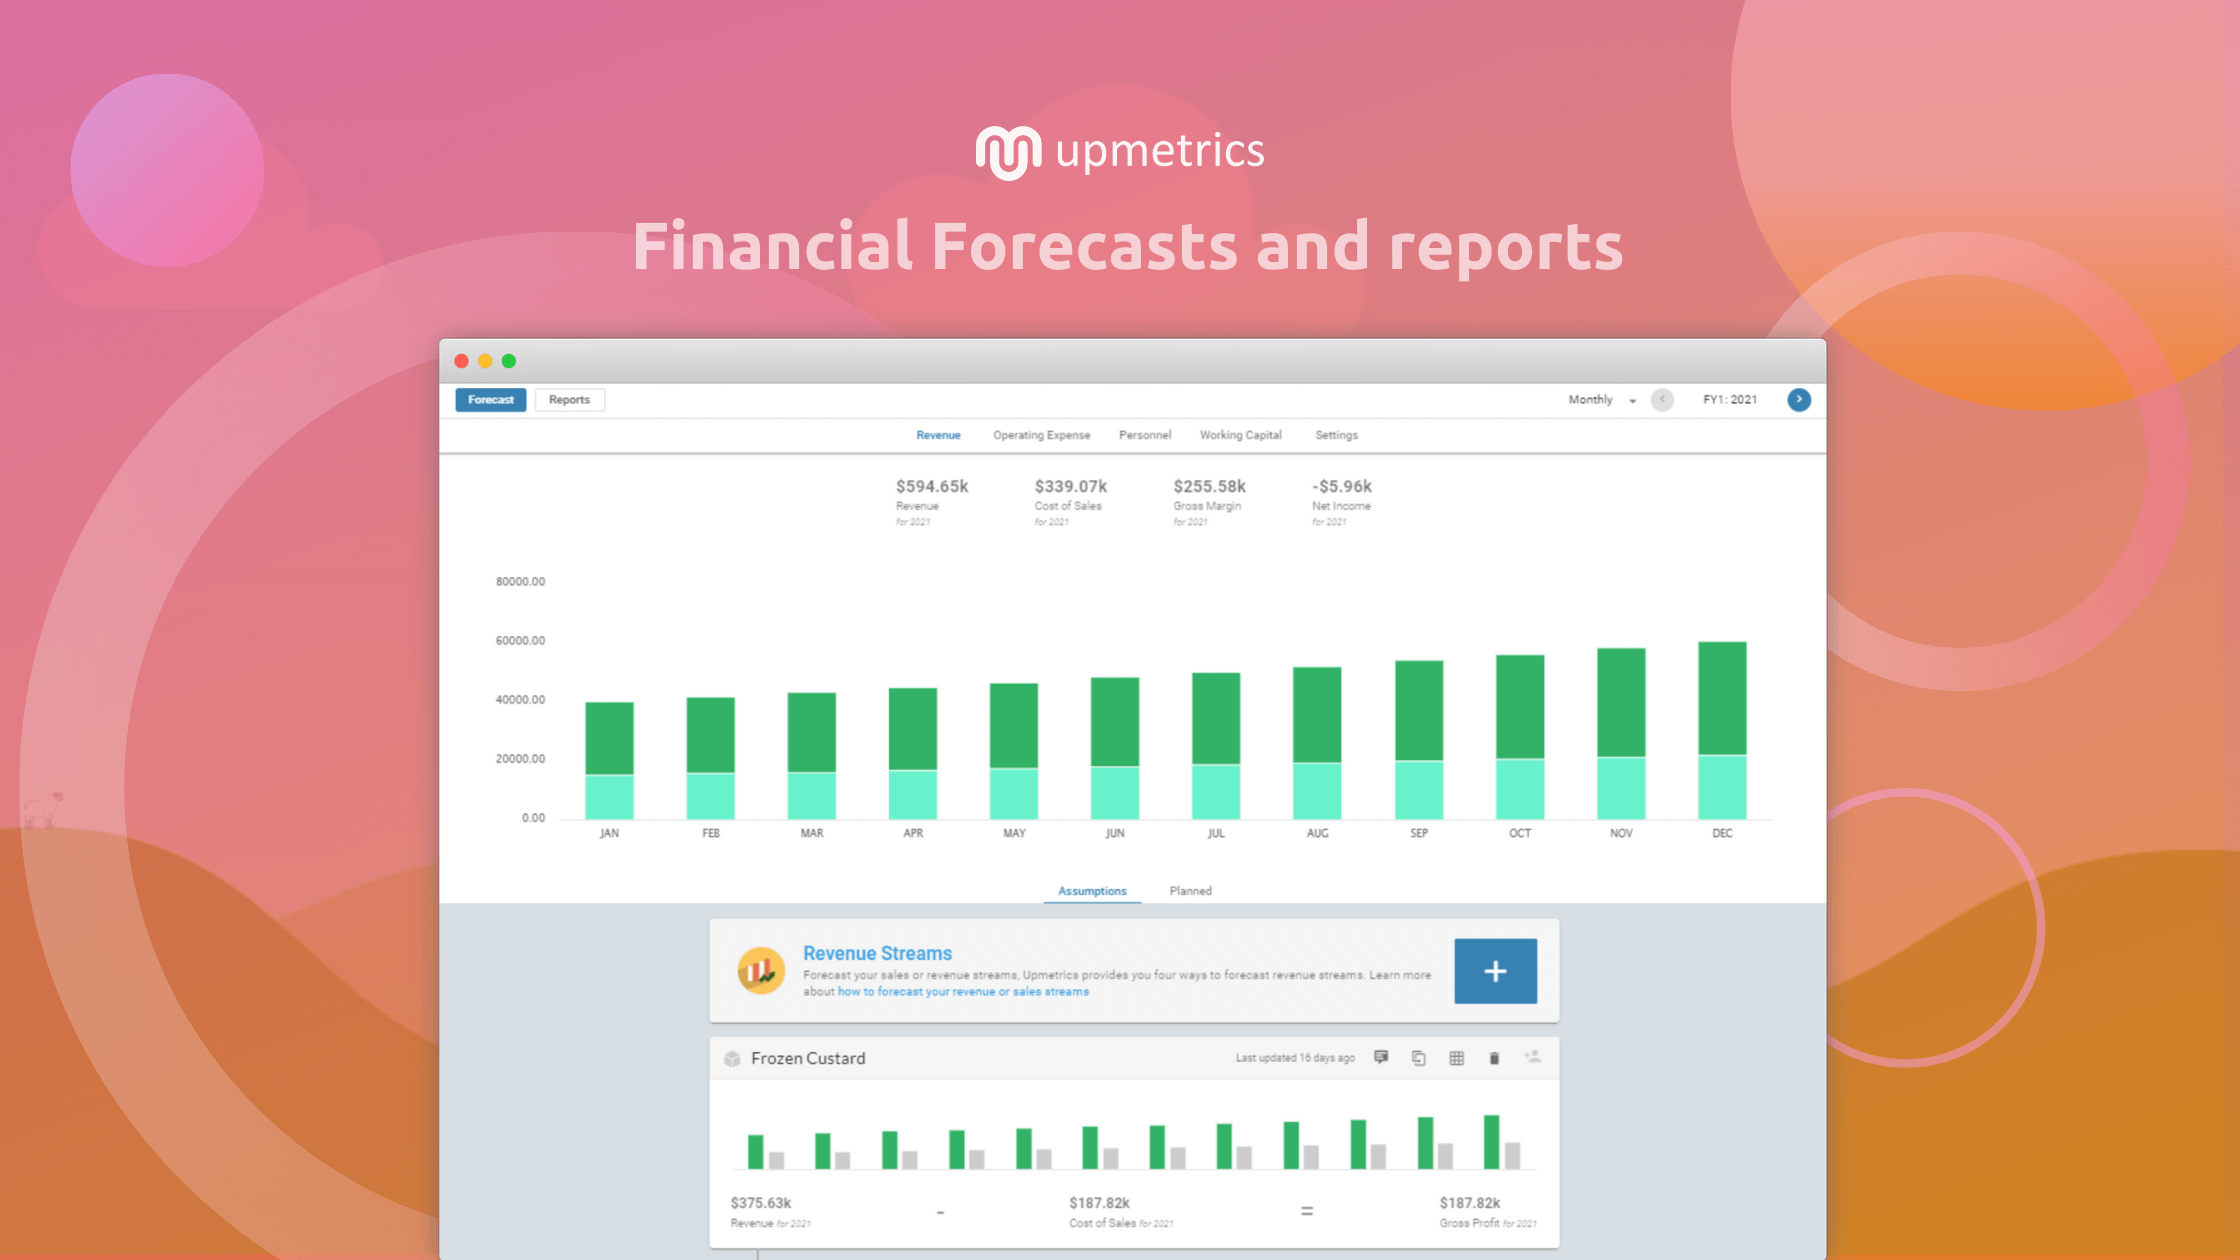 Upmetrics Financial Forecast